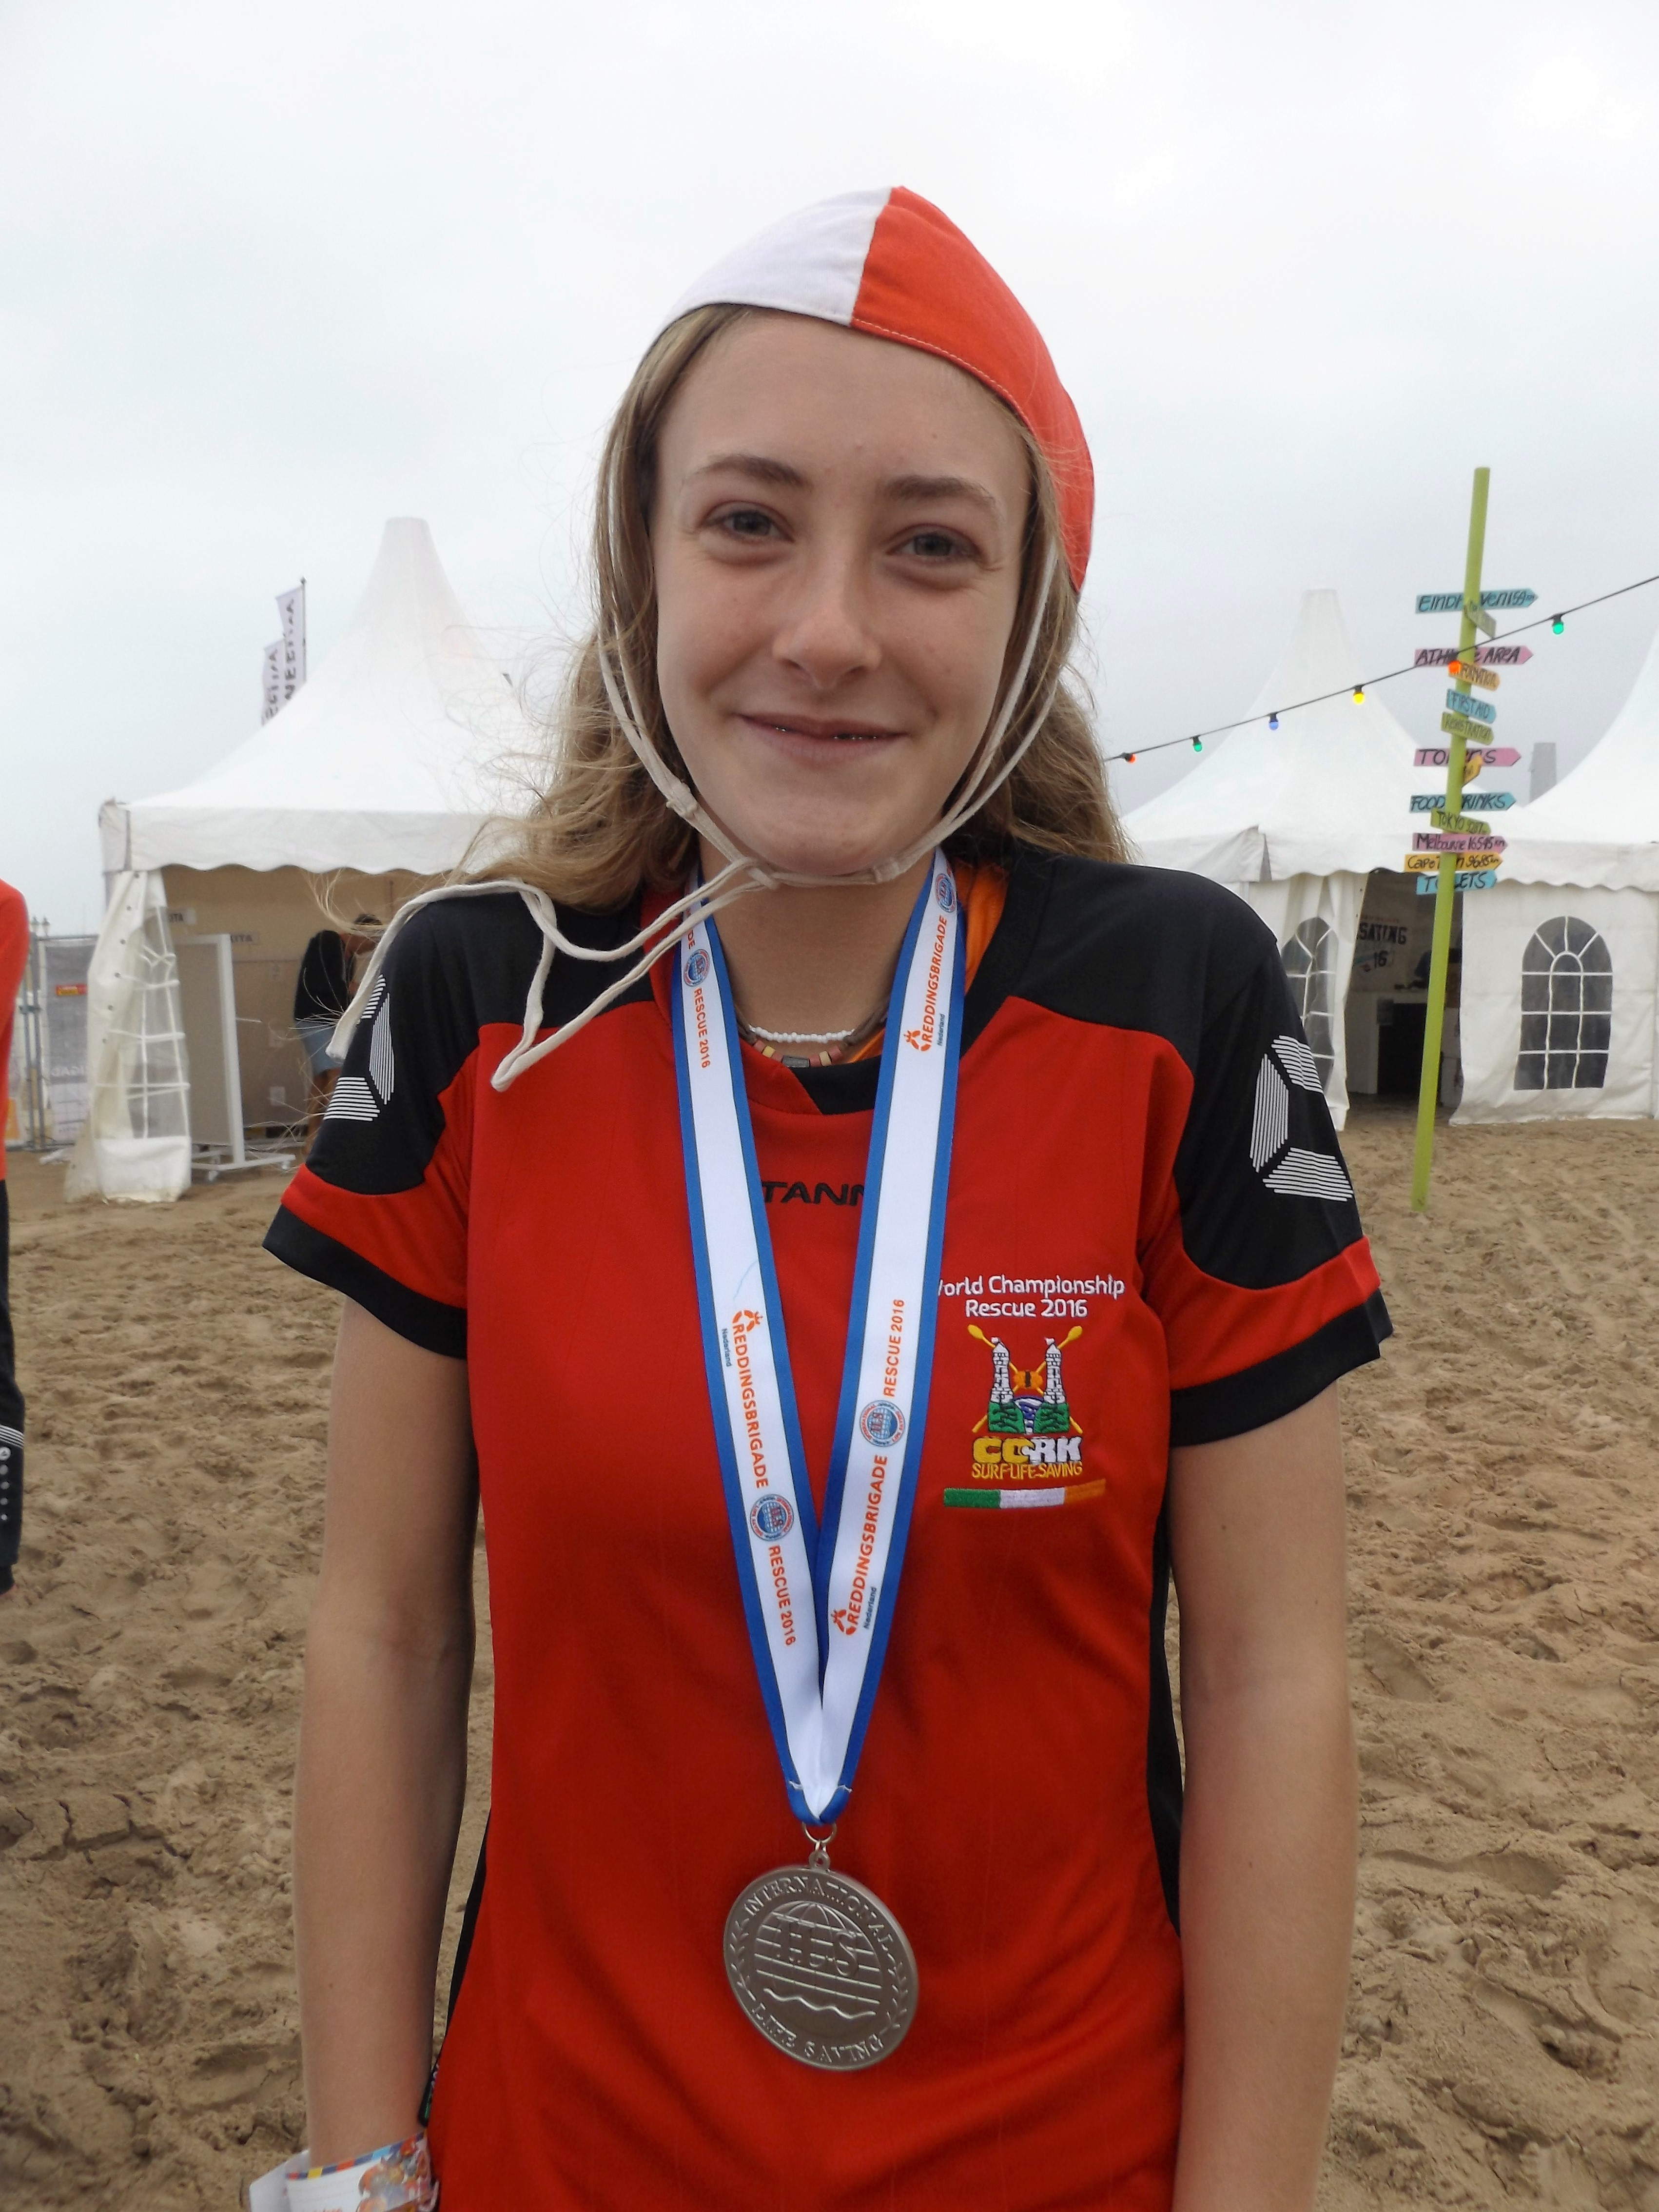 15 Year Old Laura Nicholson Clonakilty wins a Silver Medal in Beach Run at the Life Saving World Championships in Holland (Image credit: Gail Butler)